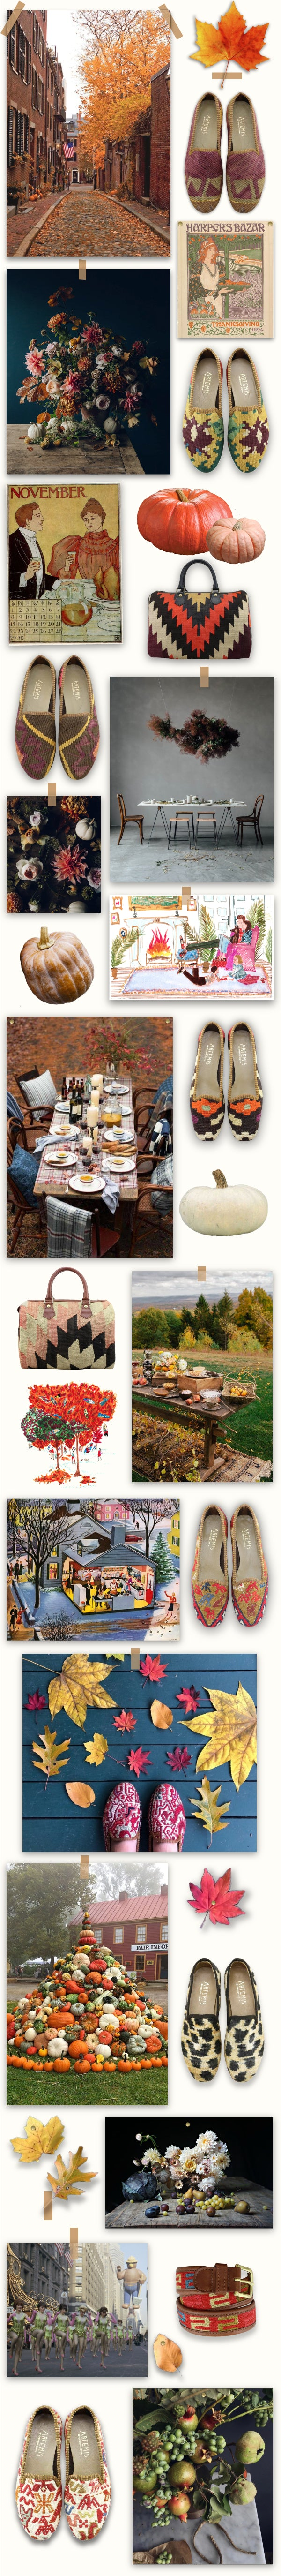 Our November mood board is made up of images that inspire us and pairs of our kilim shoes that we love.